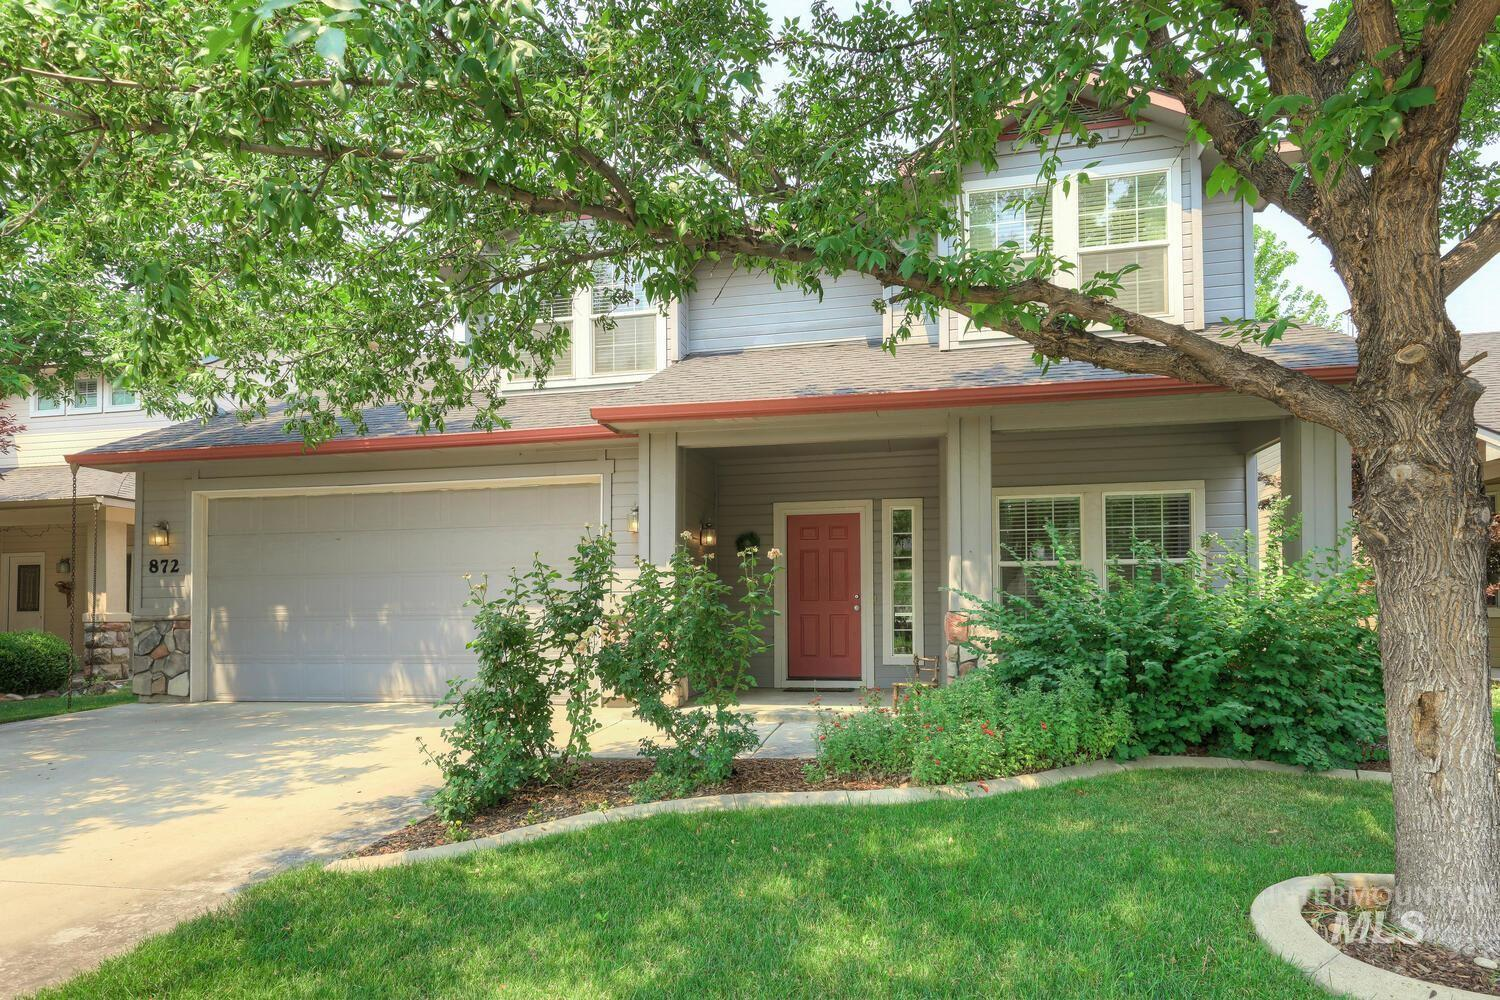 This home is adorable and is exactly what you've been looking for! The floor plan is ideal with three total bedrooms plus an office and bonus room. The master is on the main level along with a large great room and an upgraded kitchen. Beautifully decorated, impeccably maintained and most major appliances are included. With newer carpet, new interior paint and new window coverings this home is move-in ready! Private backyard with covered patio. Close to parks, schools, new restaurants and shopping.